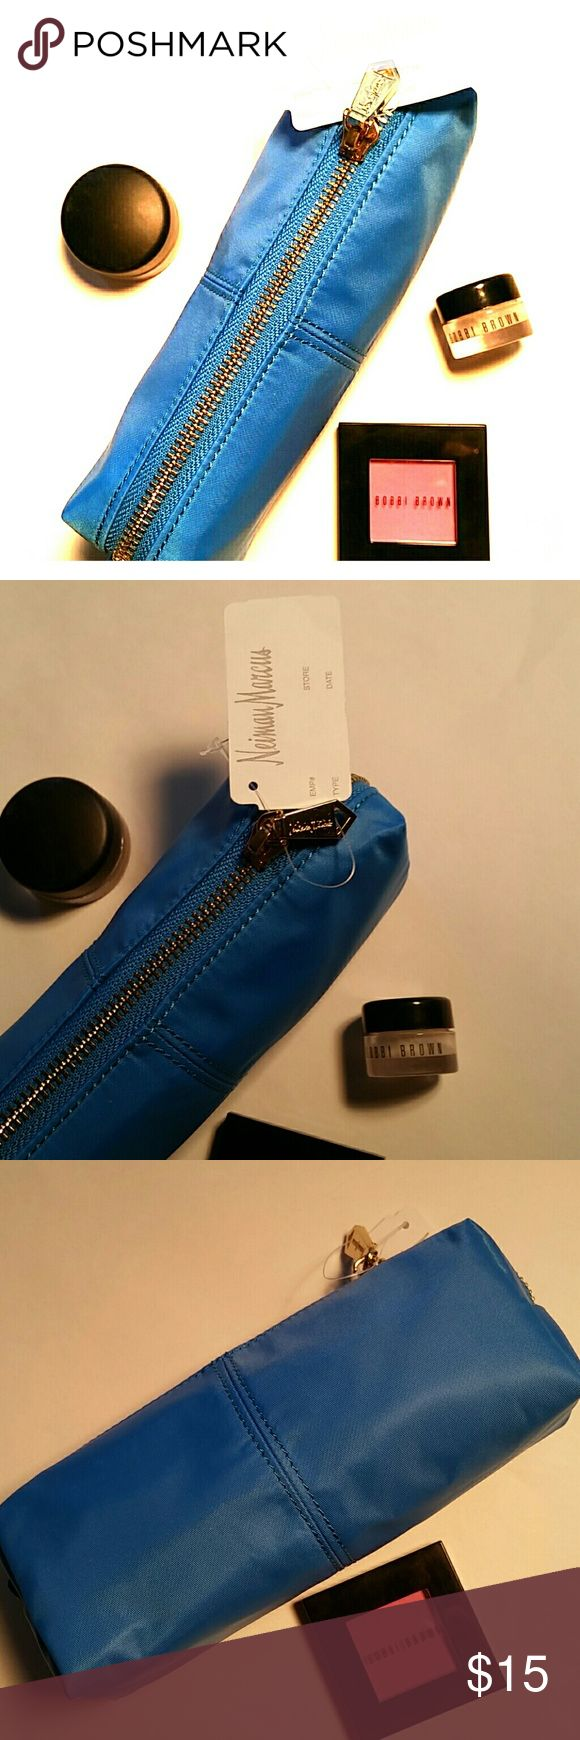 "Neiman Marcus cosmetic bag Great small cosmetic bag  7"" x 3"" x 2"" Blue (More like the first photo ) Brand new! Perfect for traveling or a night out. Neiman Marcus Bags Cosmetic Bags & Cases"